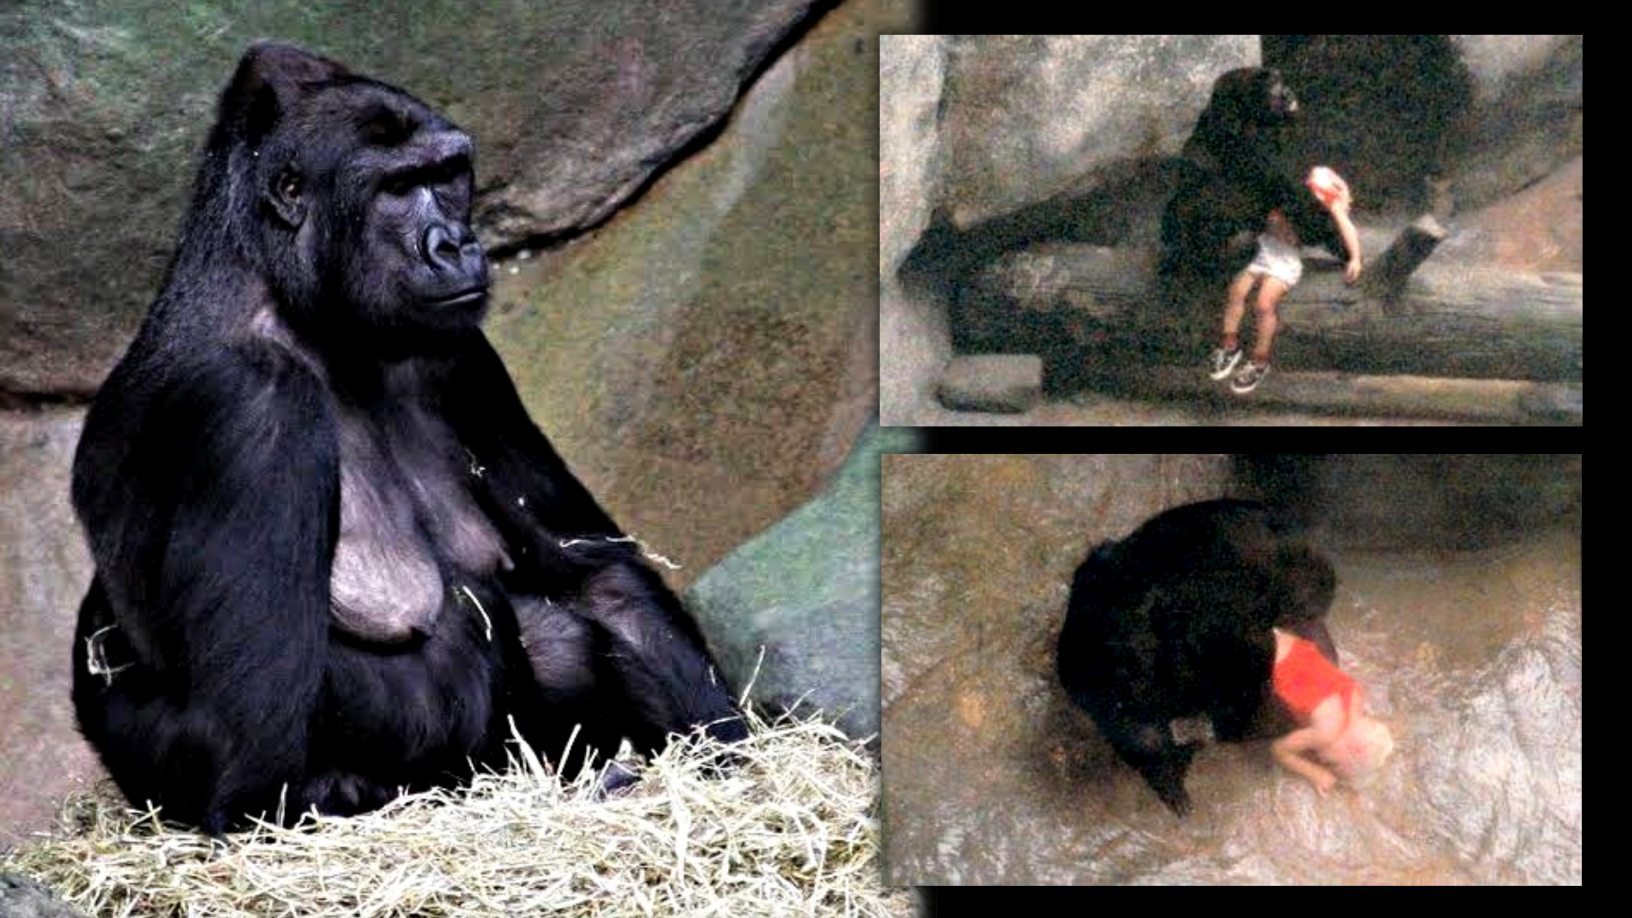 Binti Jua: This female gorilla saved a child who fell into her zoo enclosure 3